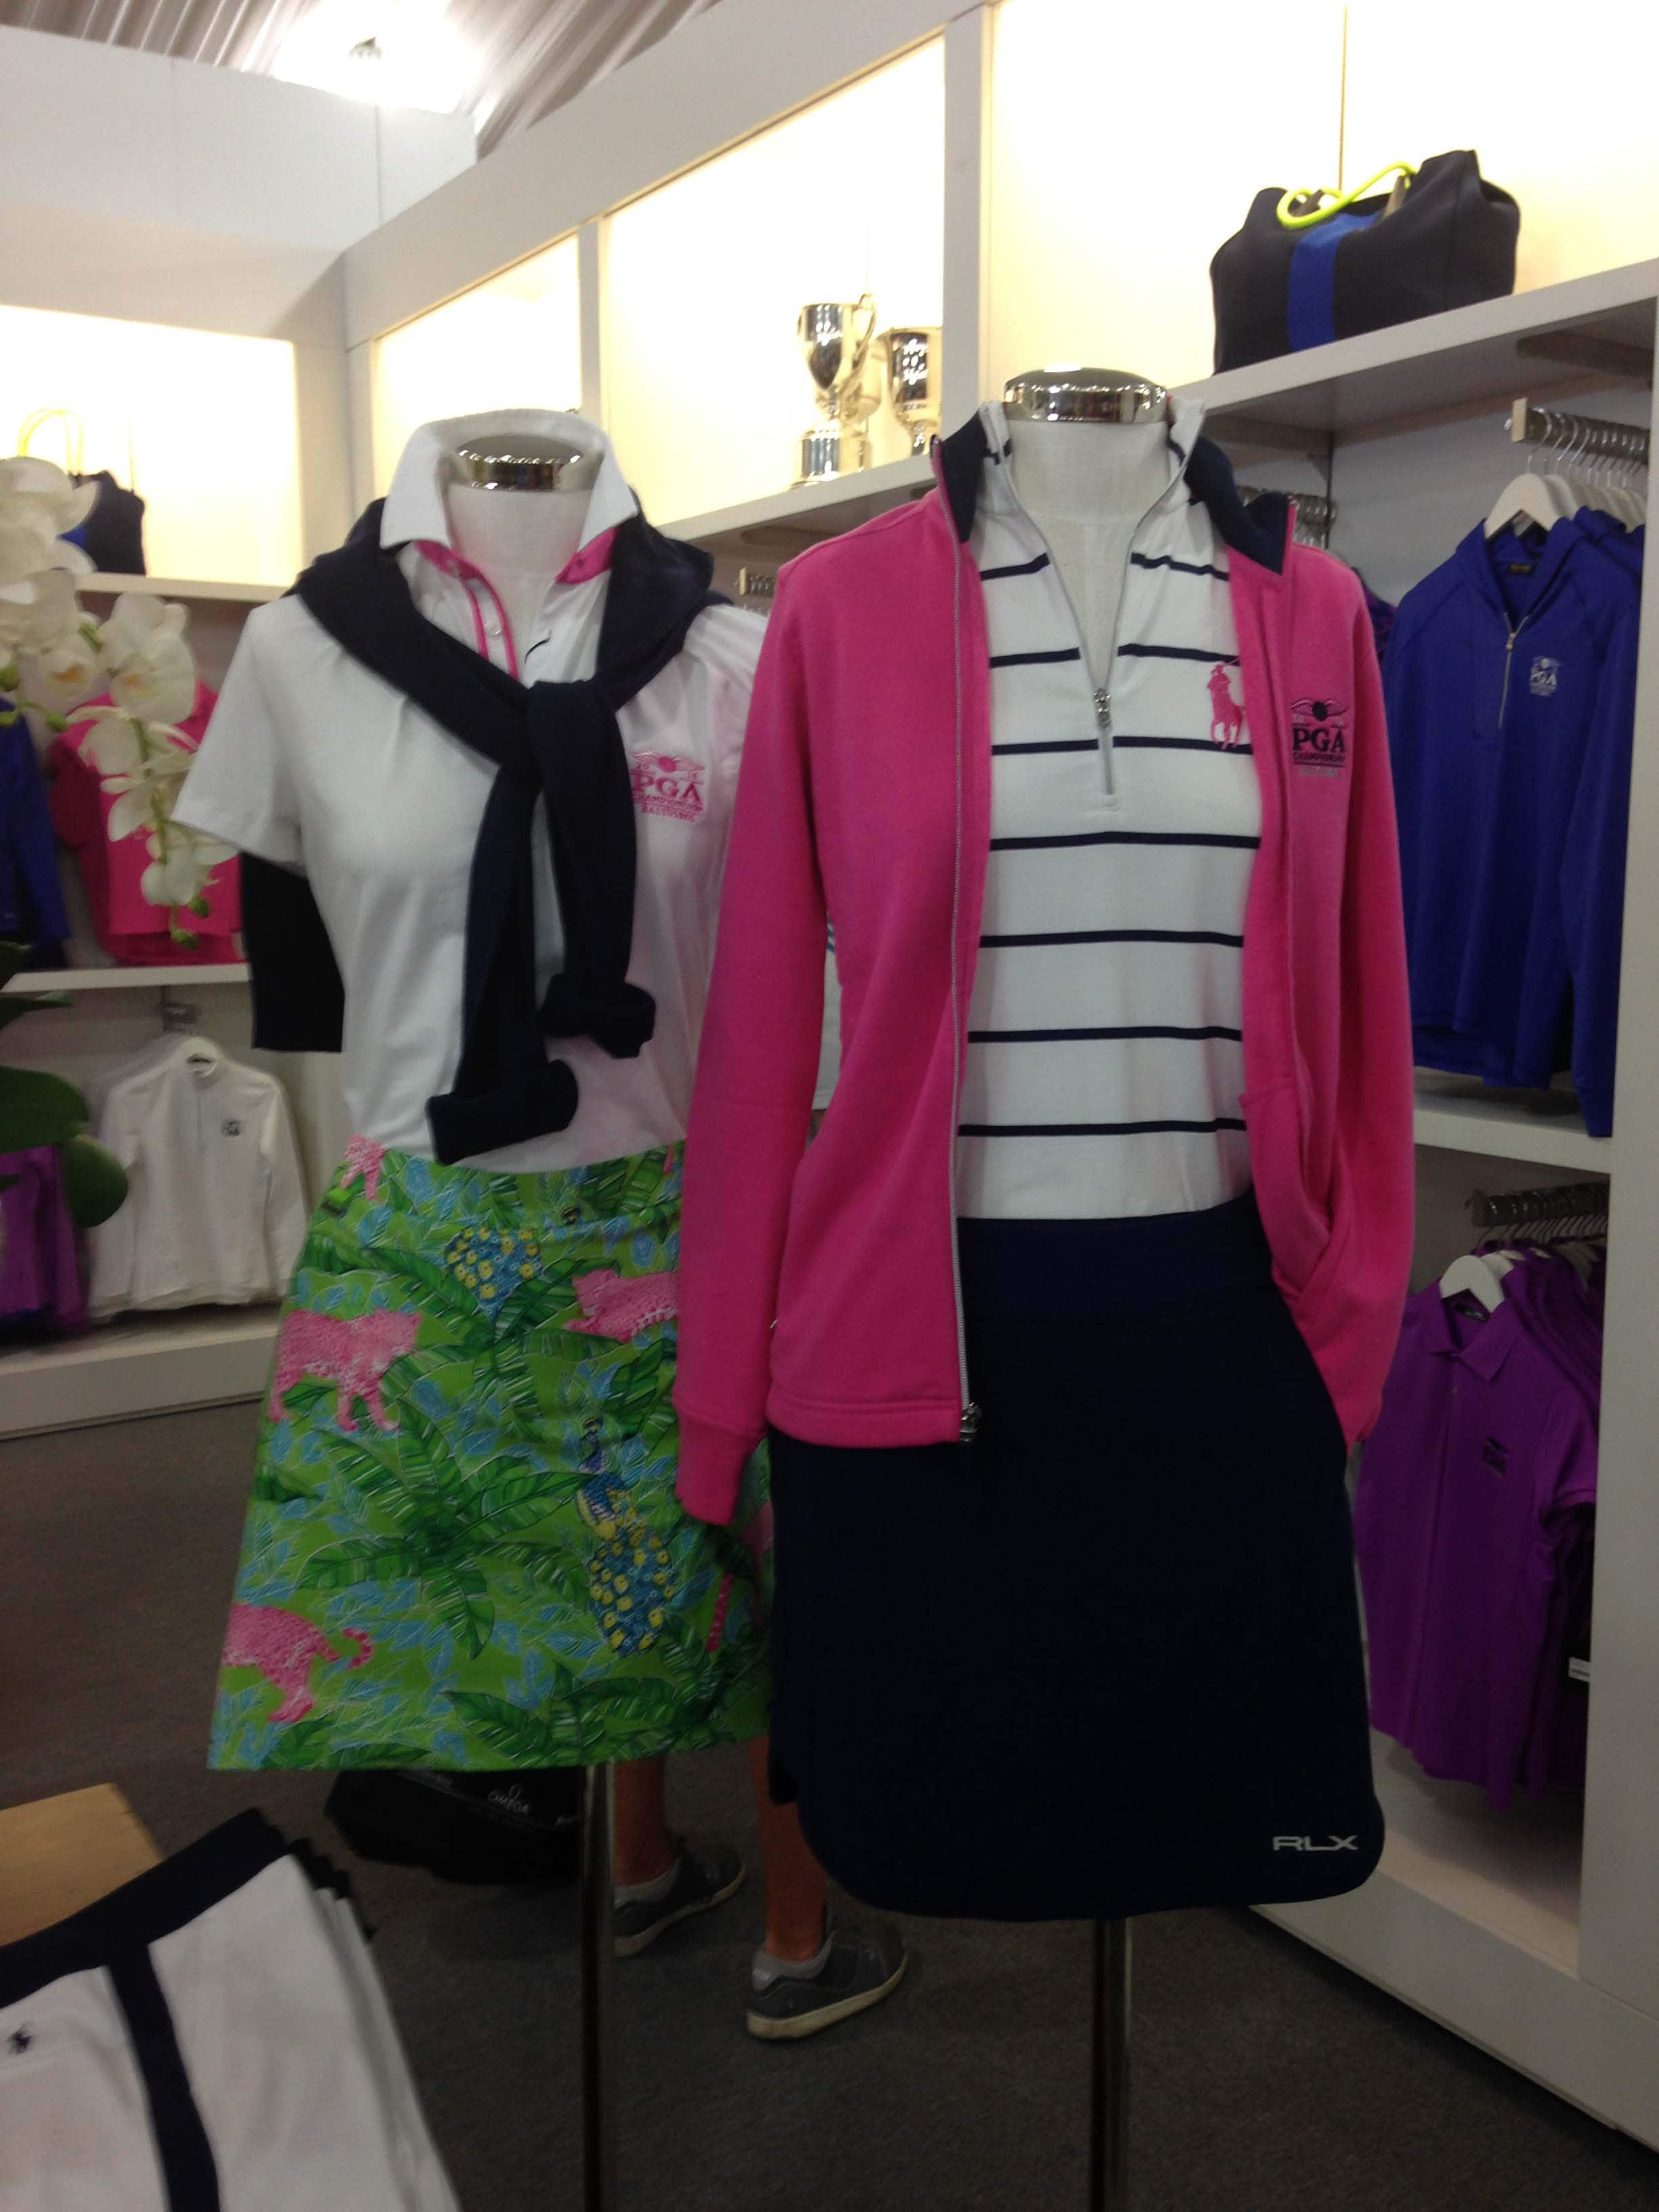 Flowery green and pink women's outfits